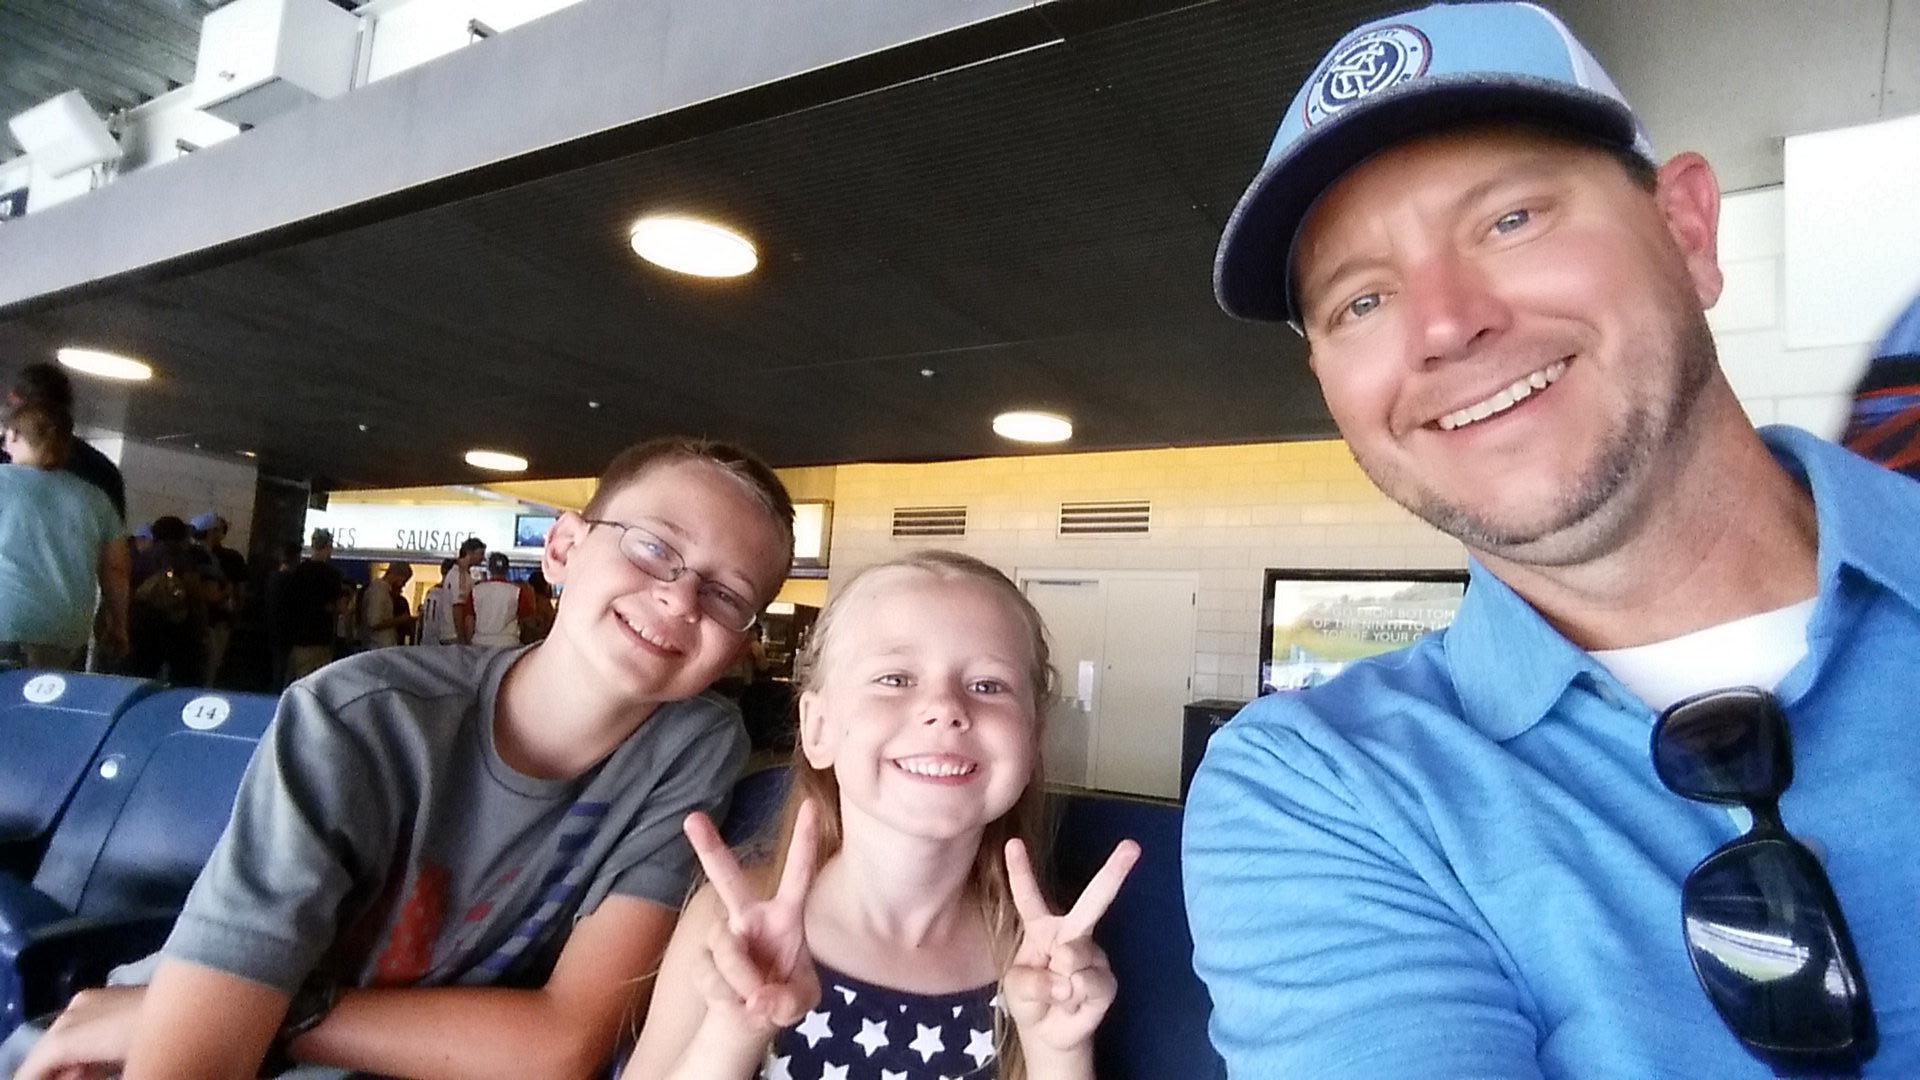 """"""" Thank you to the awesome donors who supplied the tickets for the NY Red Bulls vs NYCFC at Yankee Stadium last Sunday. It was a great time, and my family loved it! Very much appreciated and I am very grateful for your generosity."""" - US Navy Serviceman"""